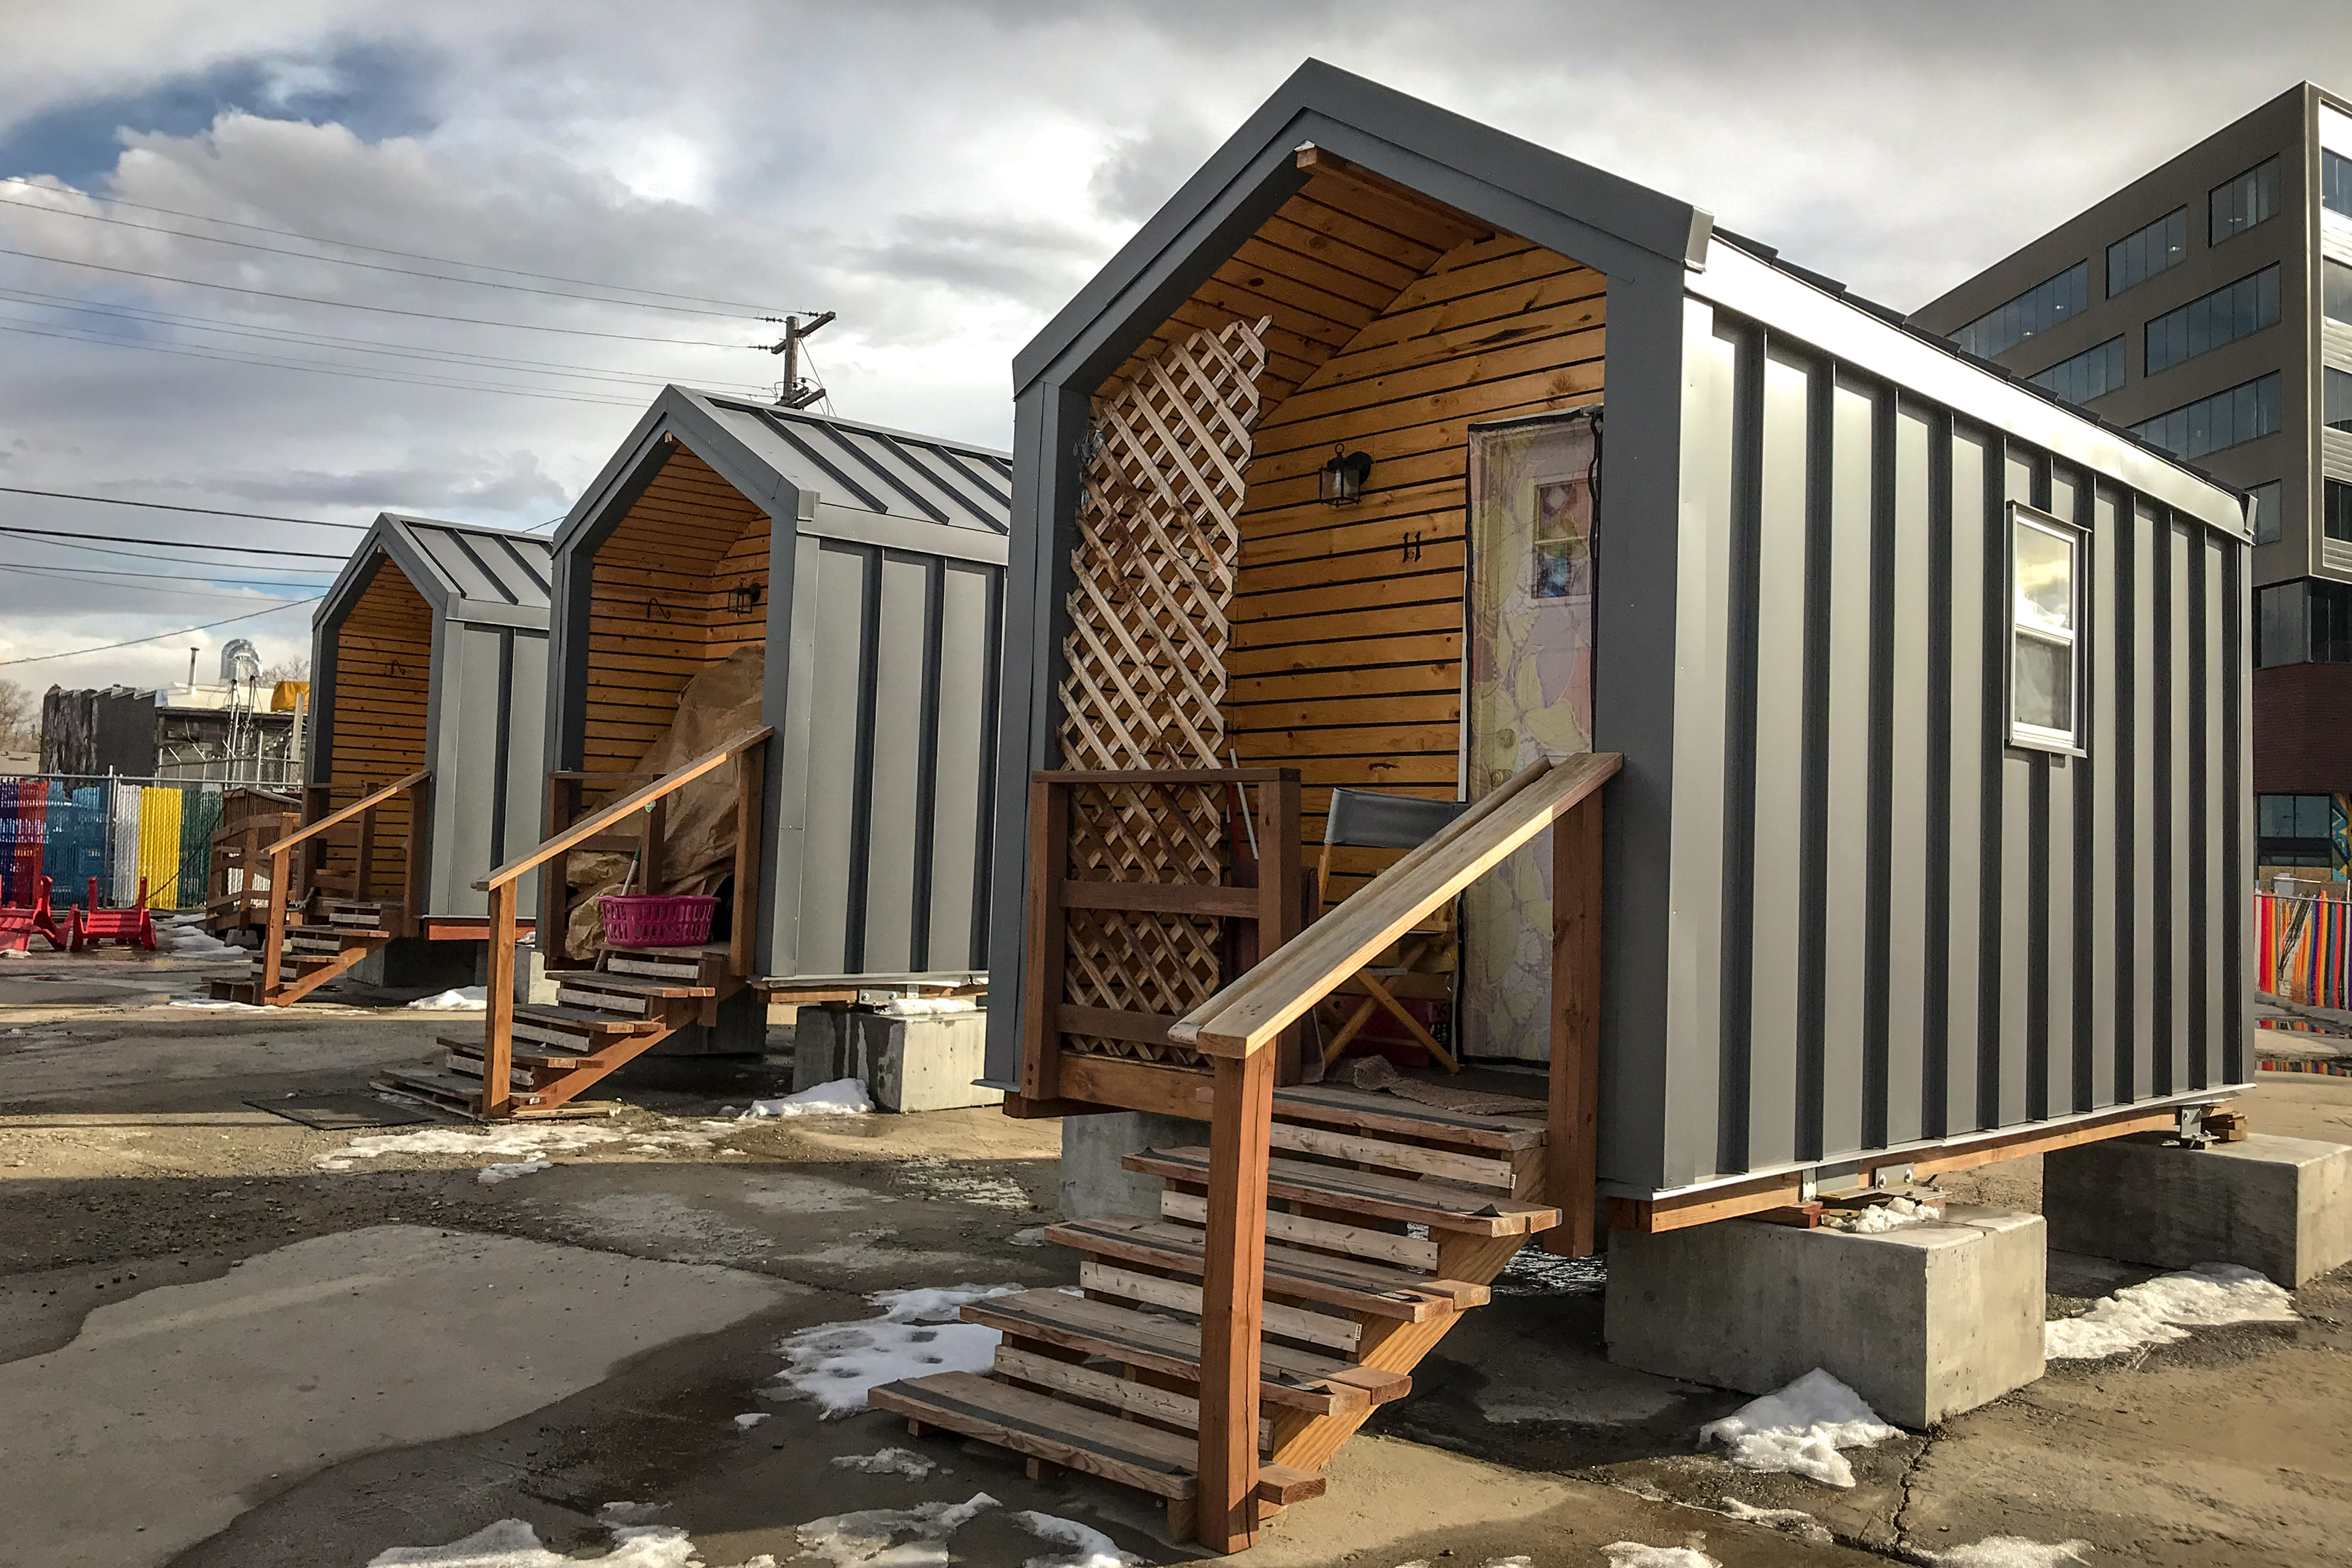 Photo: Tiny Homes Village Right 3 | Beloved Community Village - MSakas